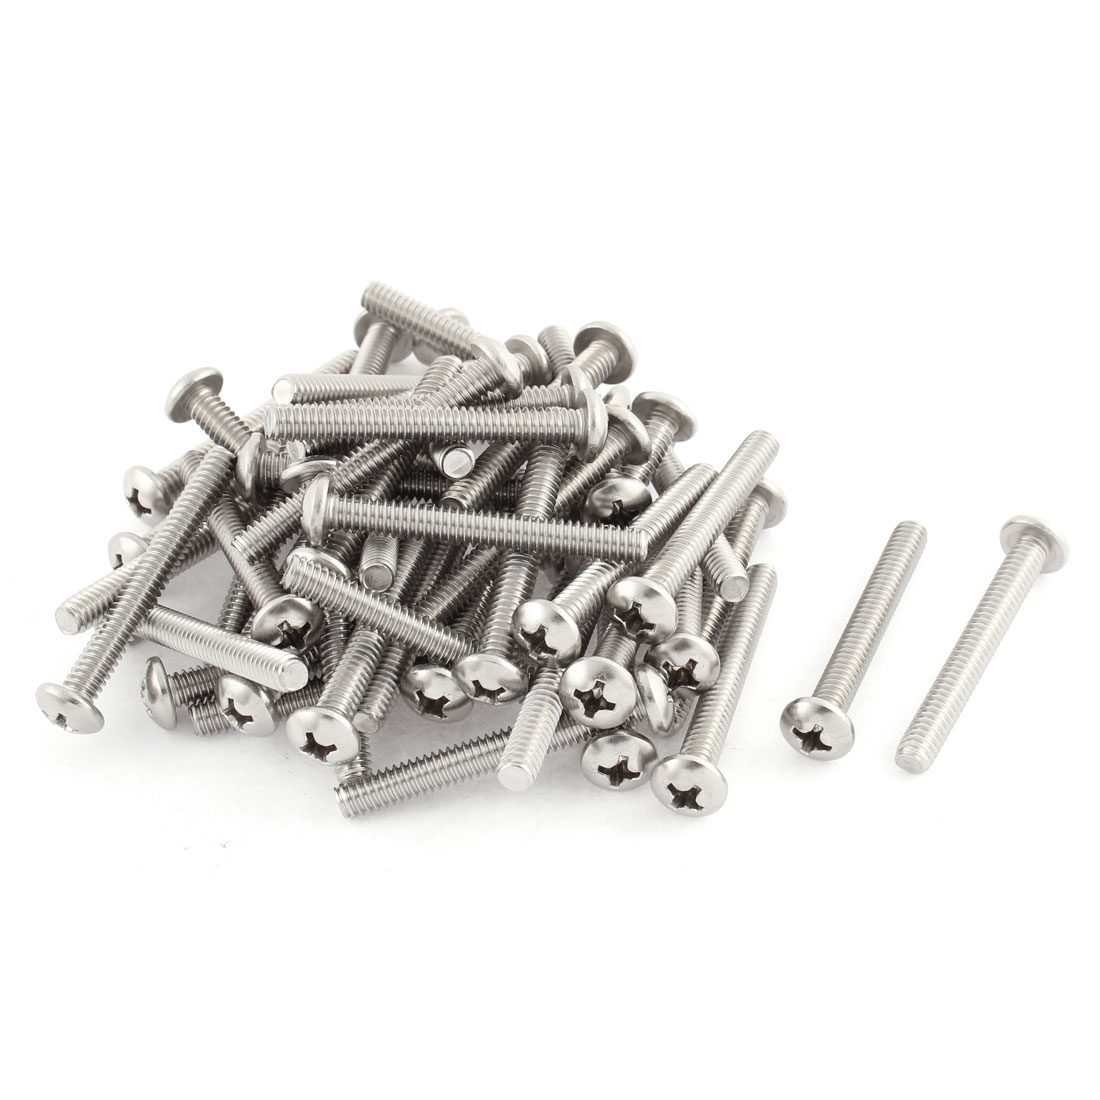 "55mm Long 1/4""x20x2"" Stainless Steel Phillips Cross Head Machine Screws Bolts 50 Pcs"